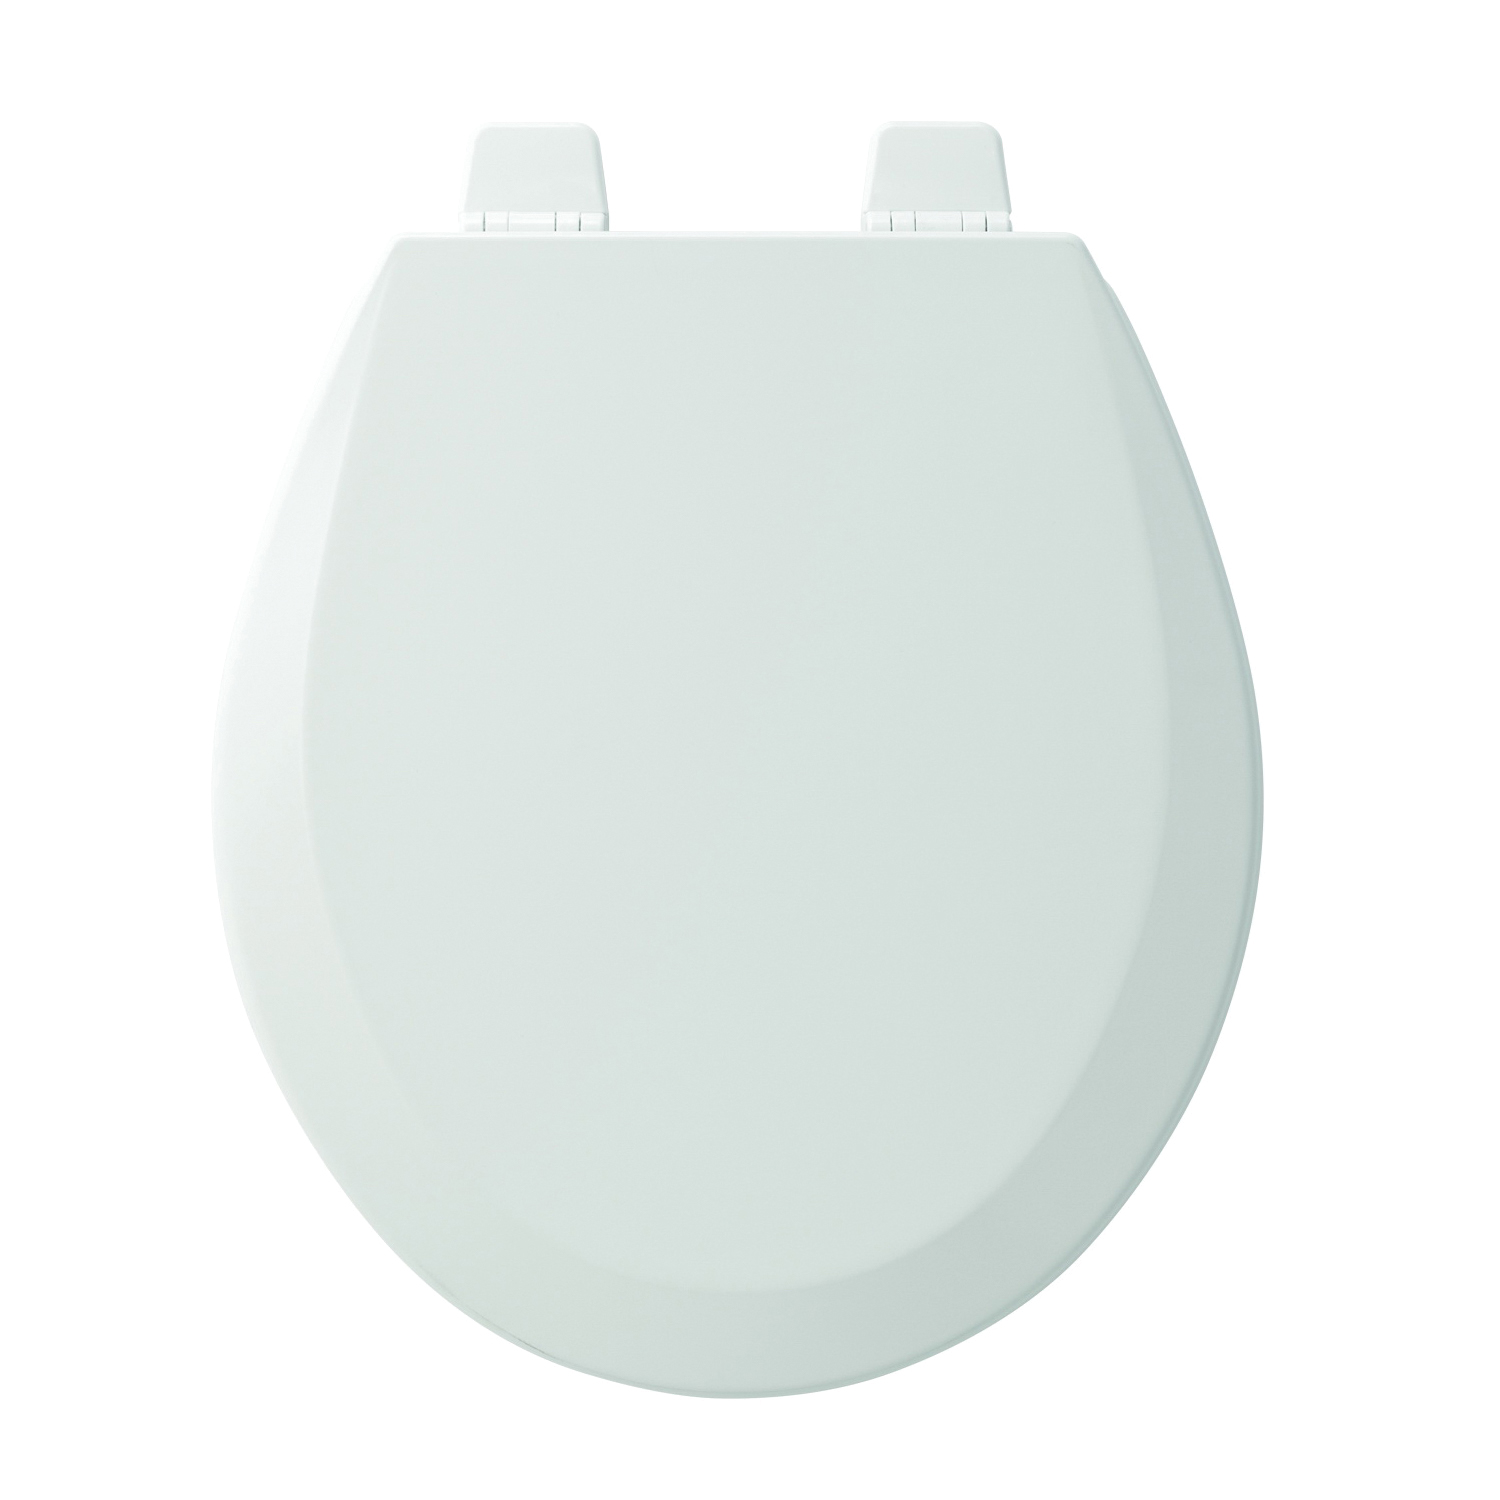 Church® 7F540TTT 000 Toilet Seat With Cover, Round Bowl, Closed Front, Wood, Adjustable Hinge, White